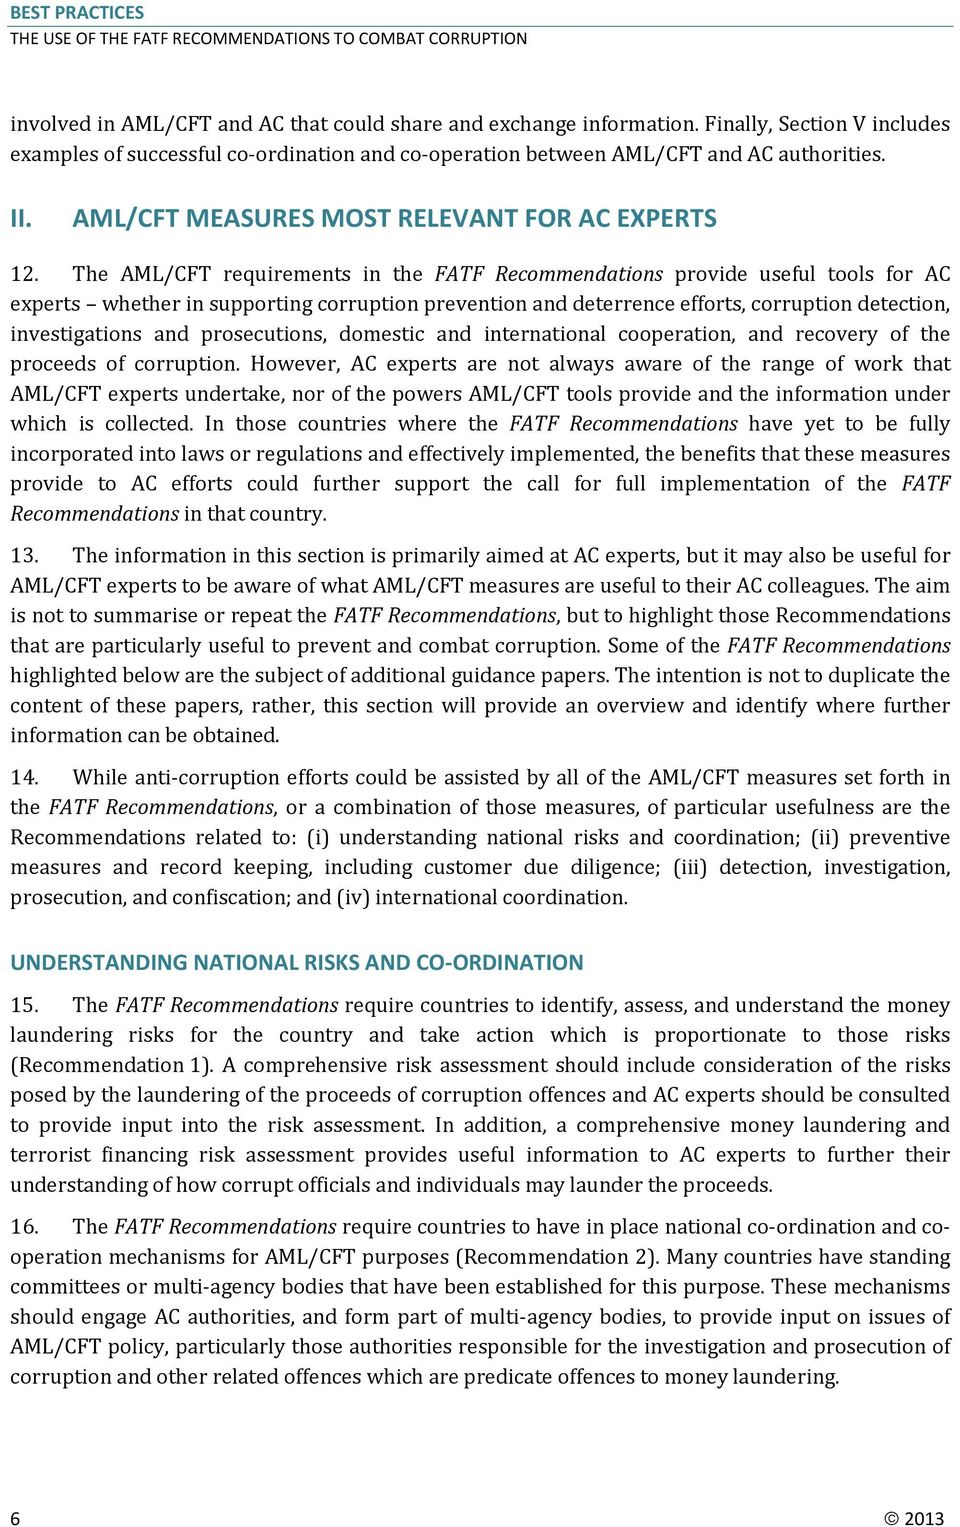 The AML/CFT requirements in the FATF Recommendations provide useful tools for AC experts whether in supporting corruption prevention and deterrence efforts, corruption detection, investigations and